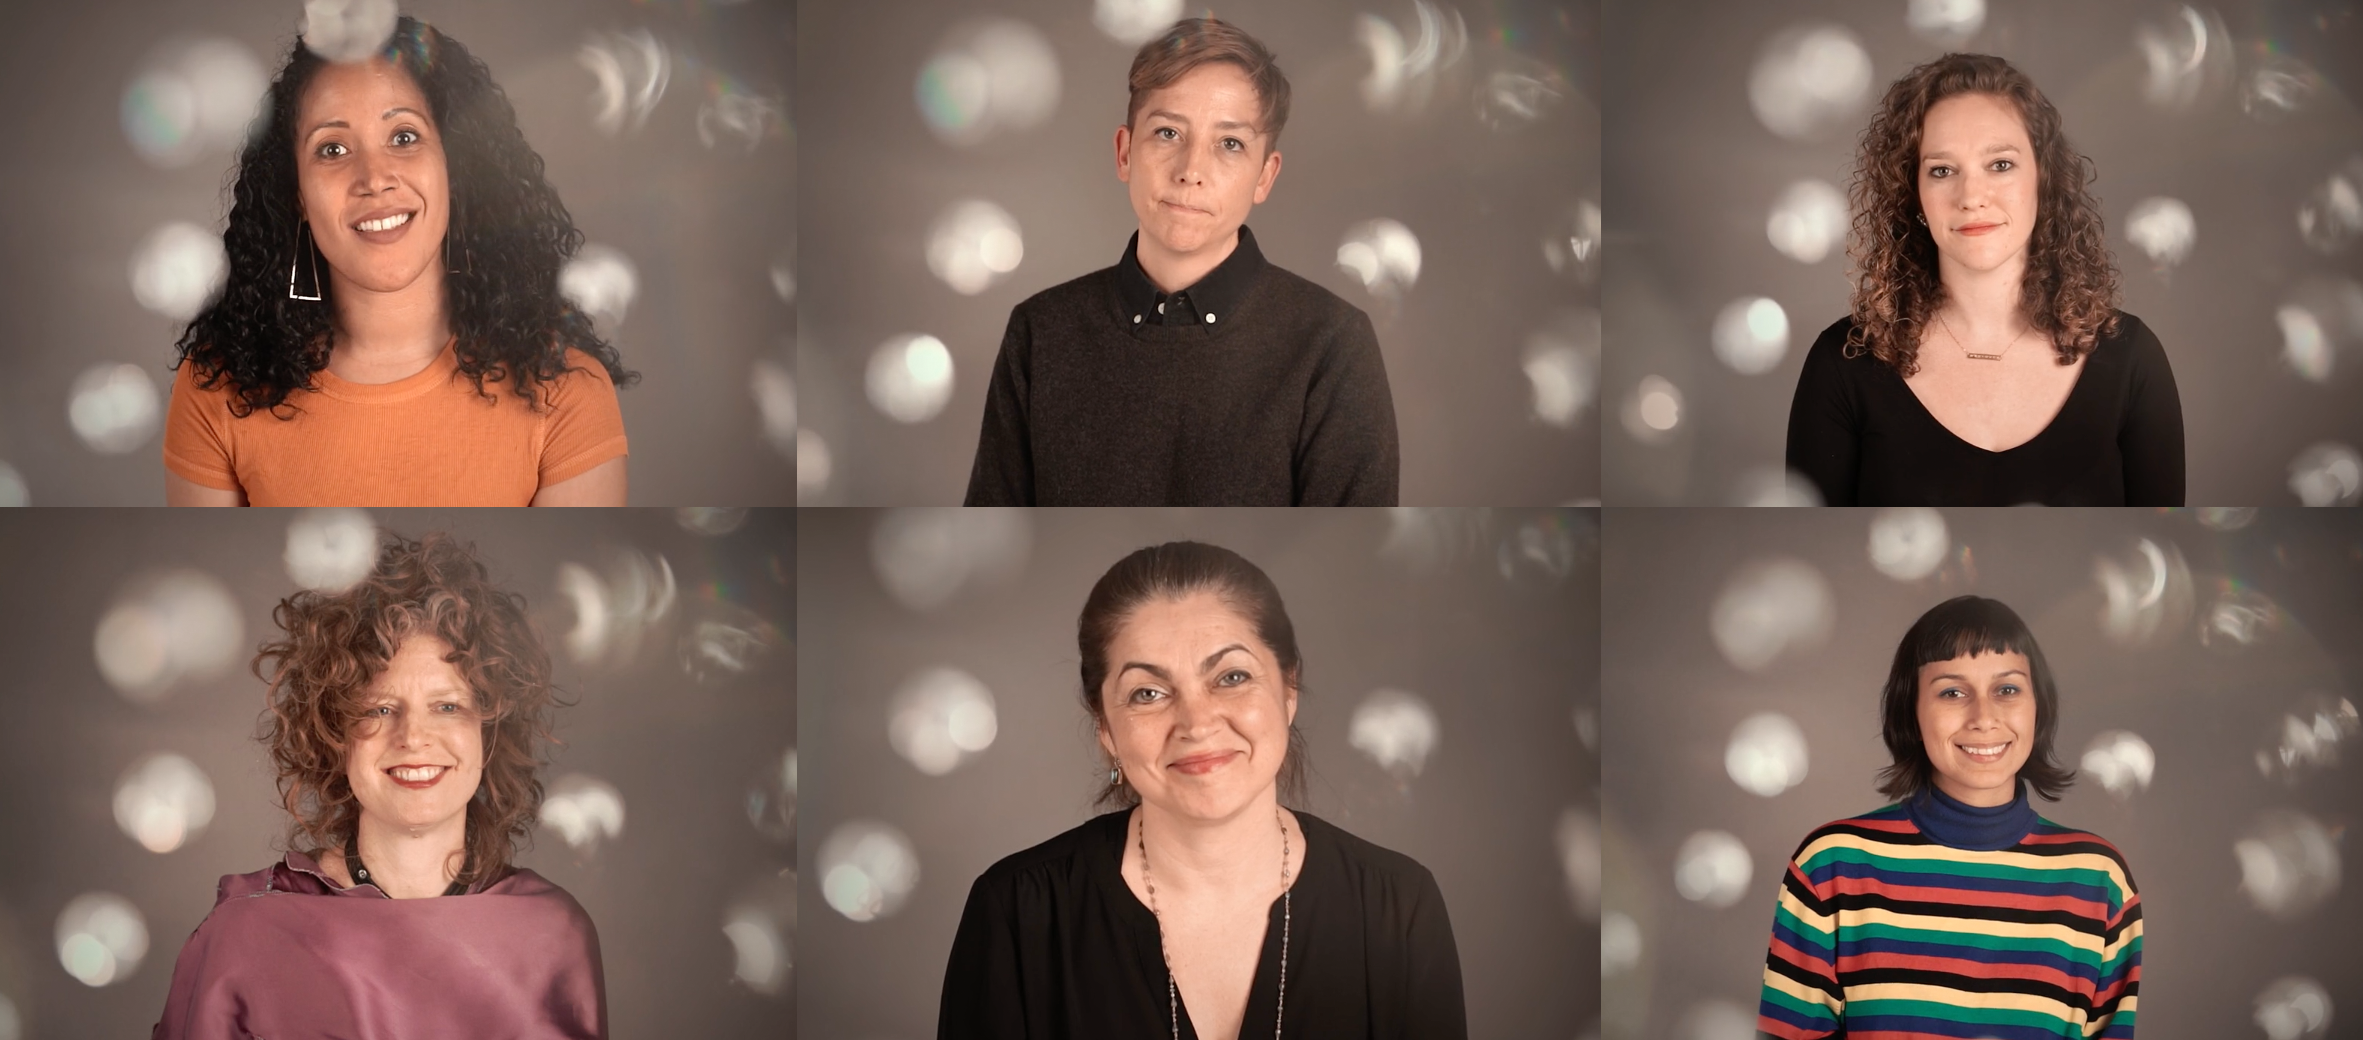 Creative Women's Network The Broad Exchange Sparks 'I Resolve' Movement for IWD